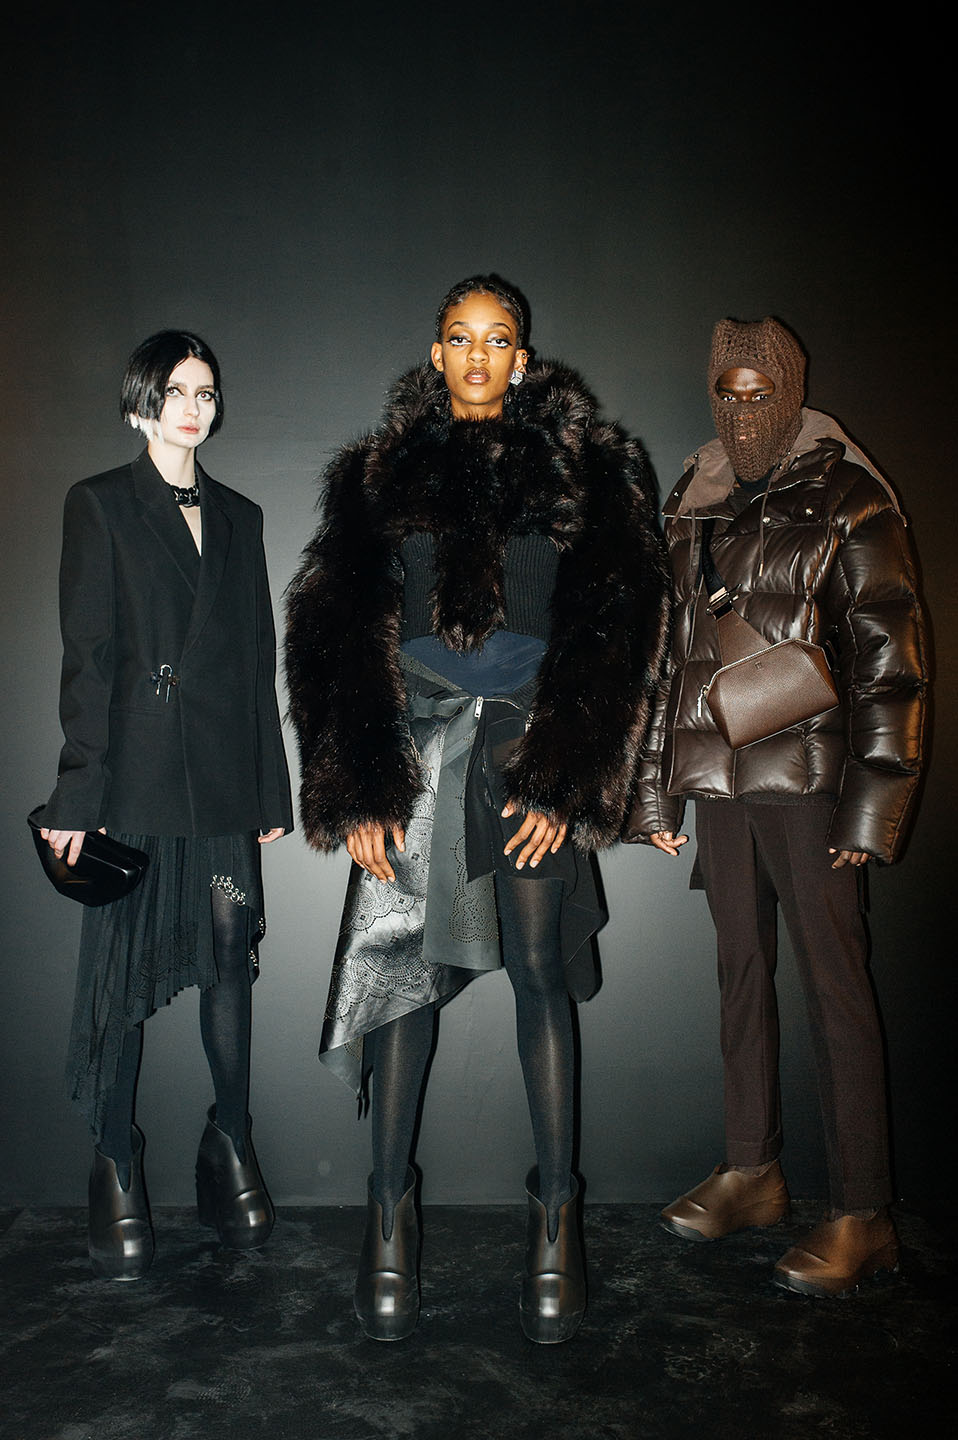 The Fall 20 Givenchy Show Felt Like Matthew Williams' Real Debut ...